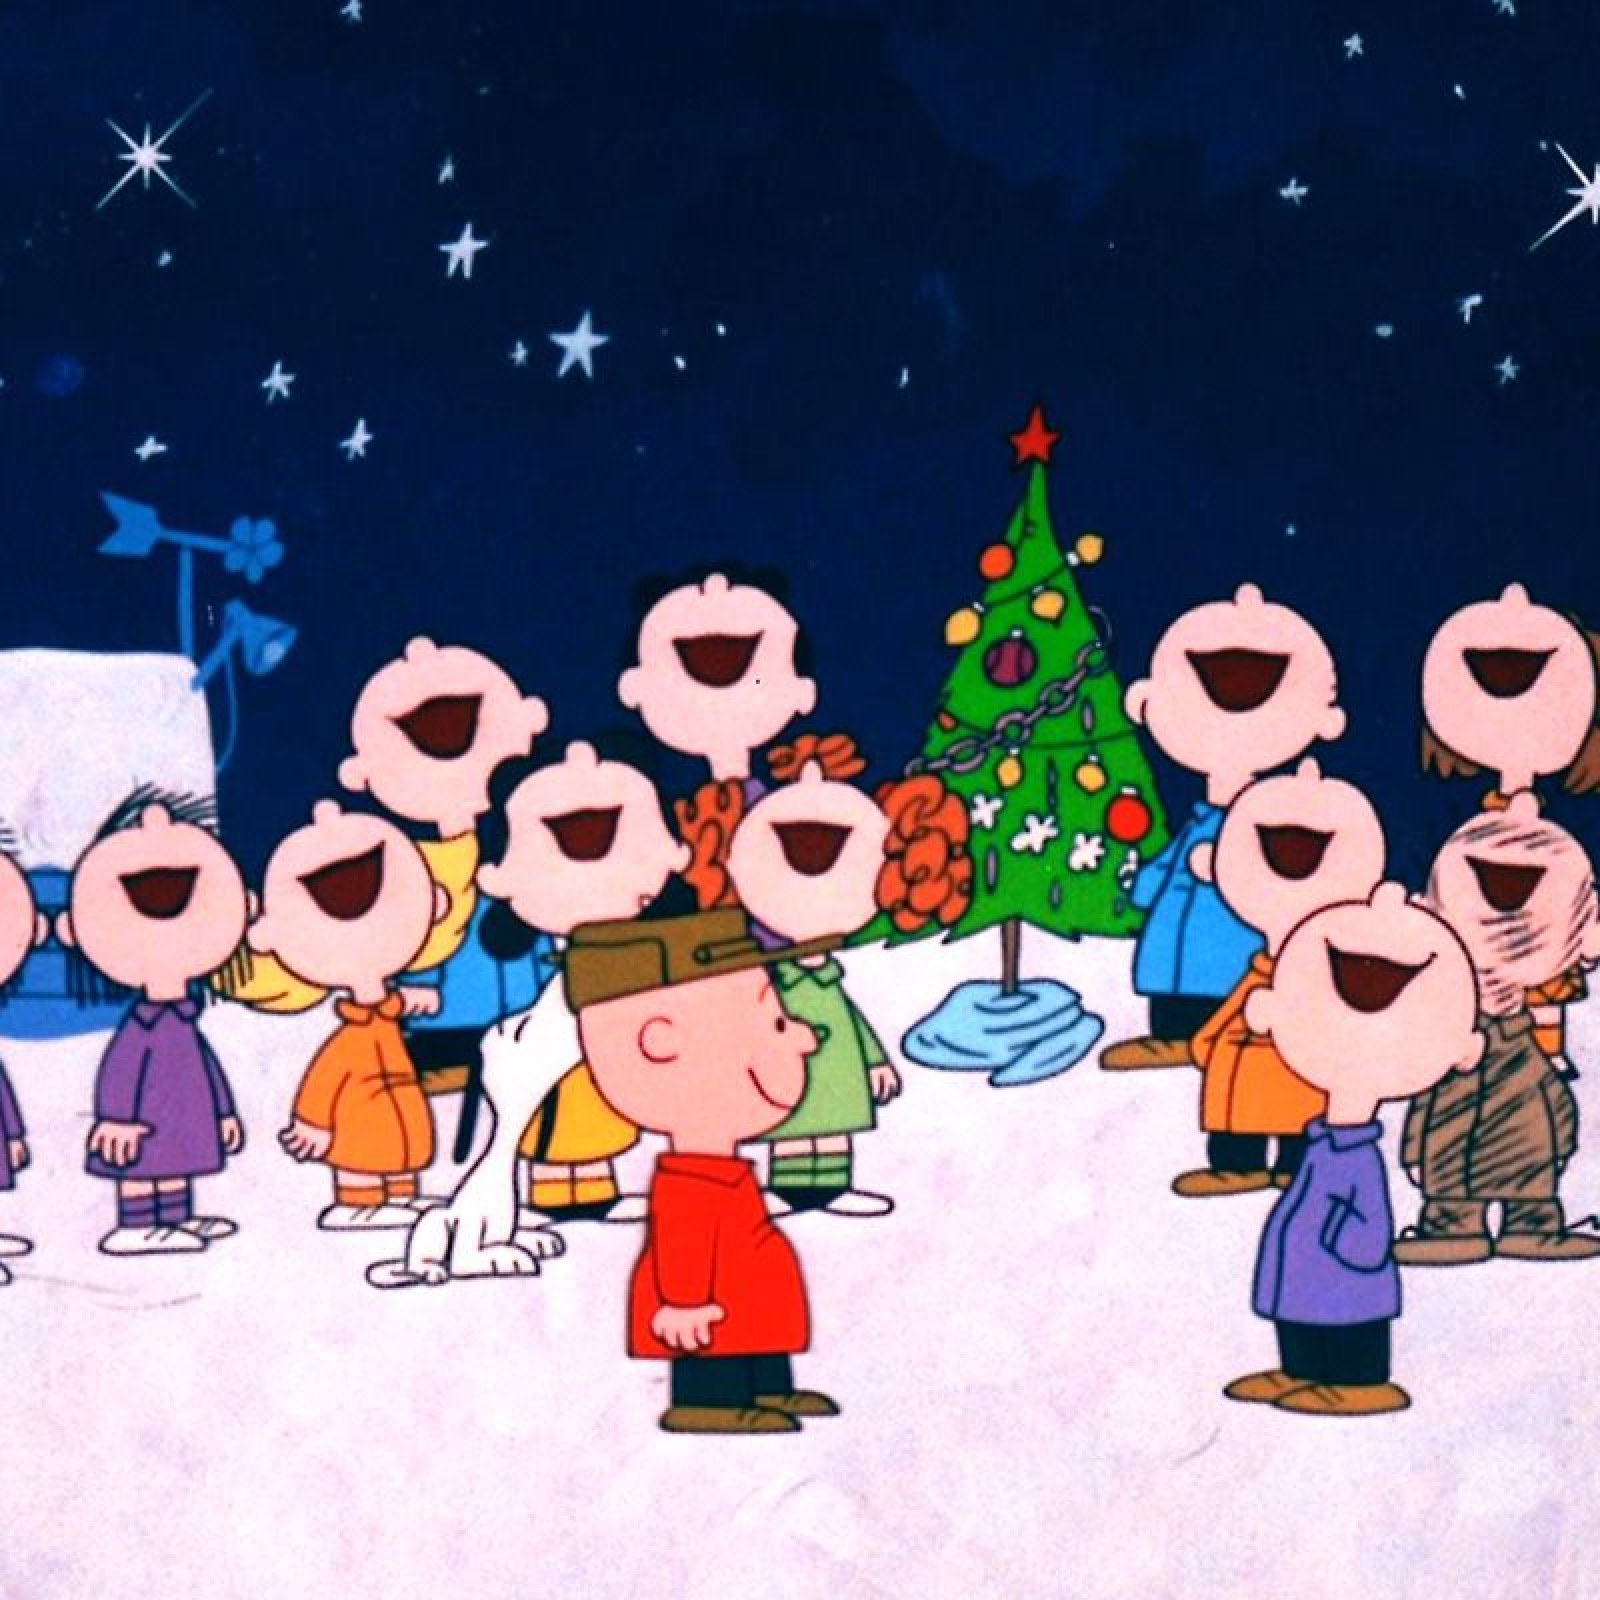 A Charlie Brown Christmas': How to Watch For Free Online